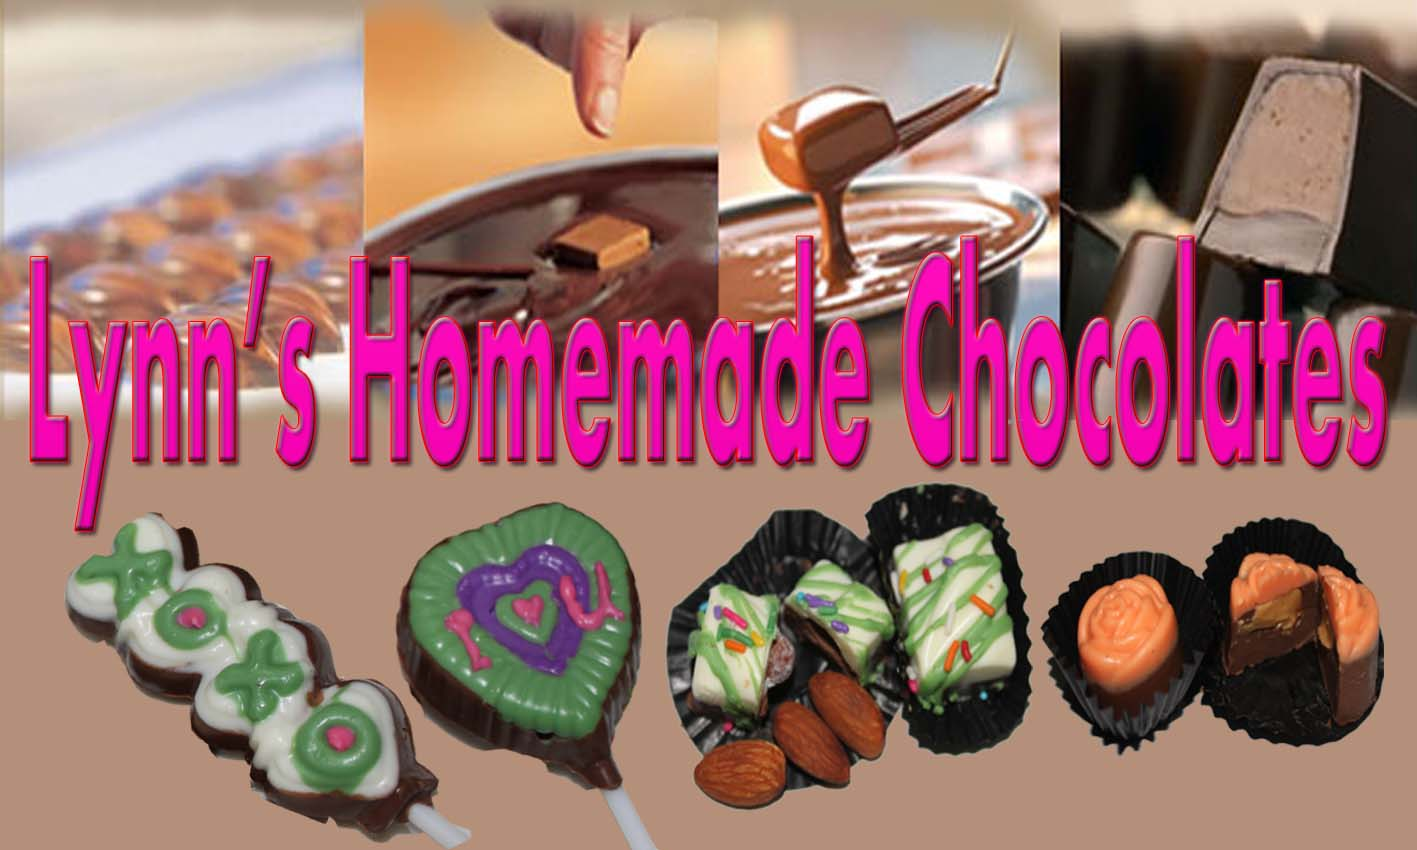 Lynn's Homemade Chocolates